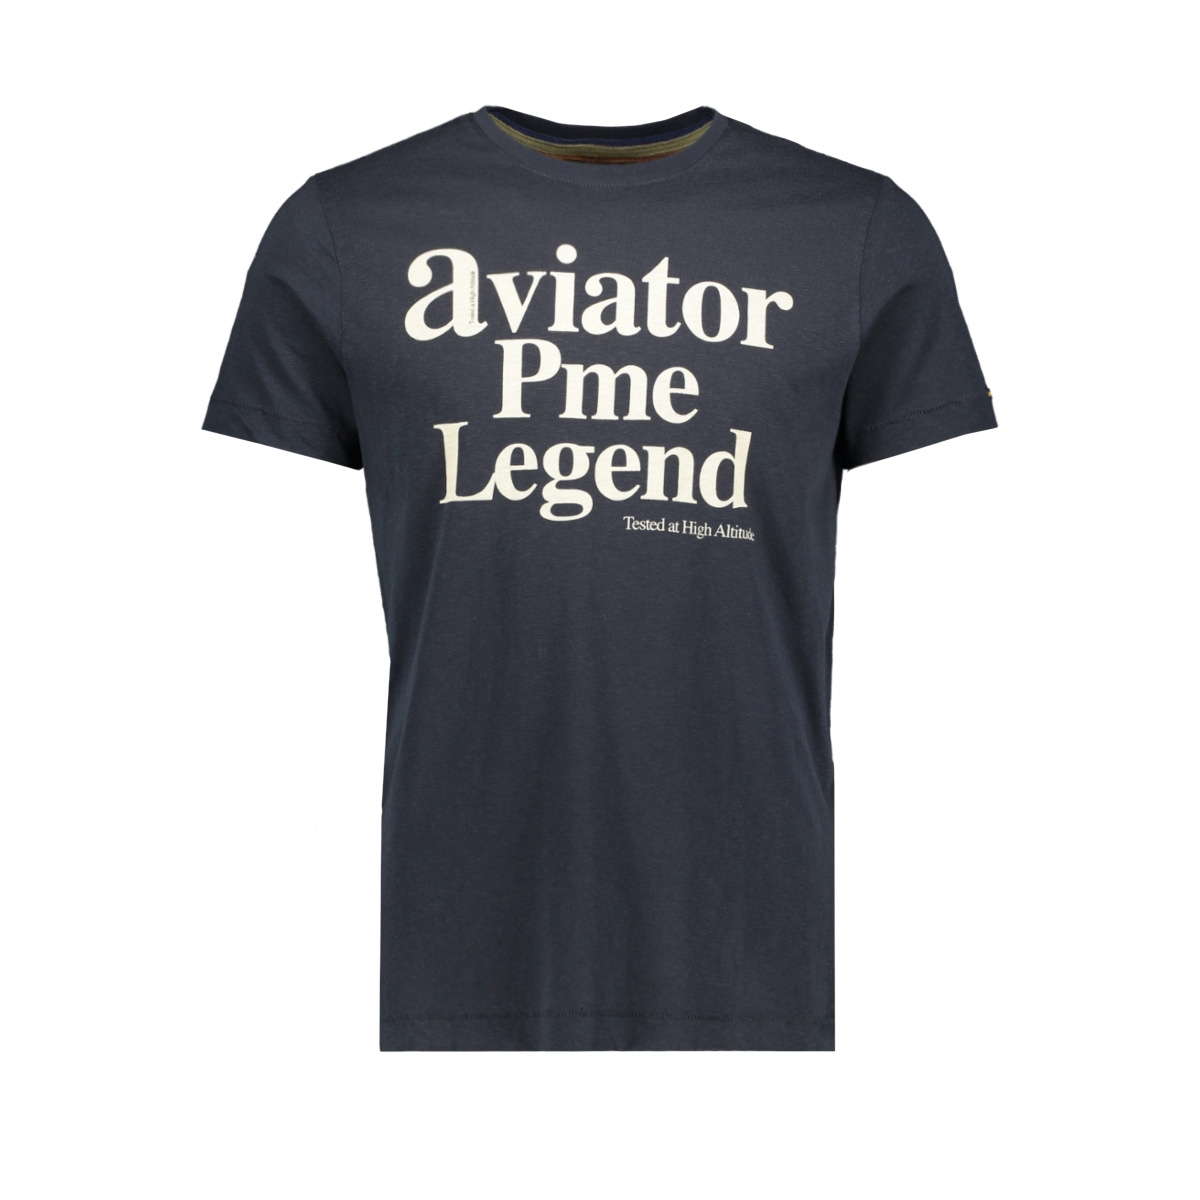 single jersey t shirt ptss192540 pme legend t-shirt 5281